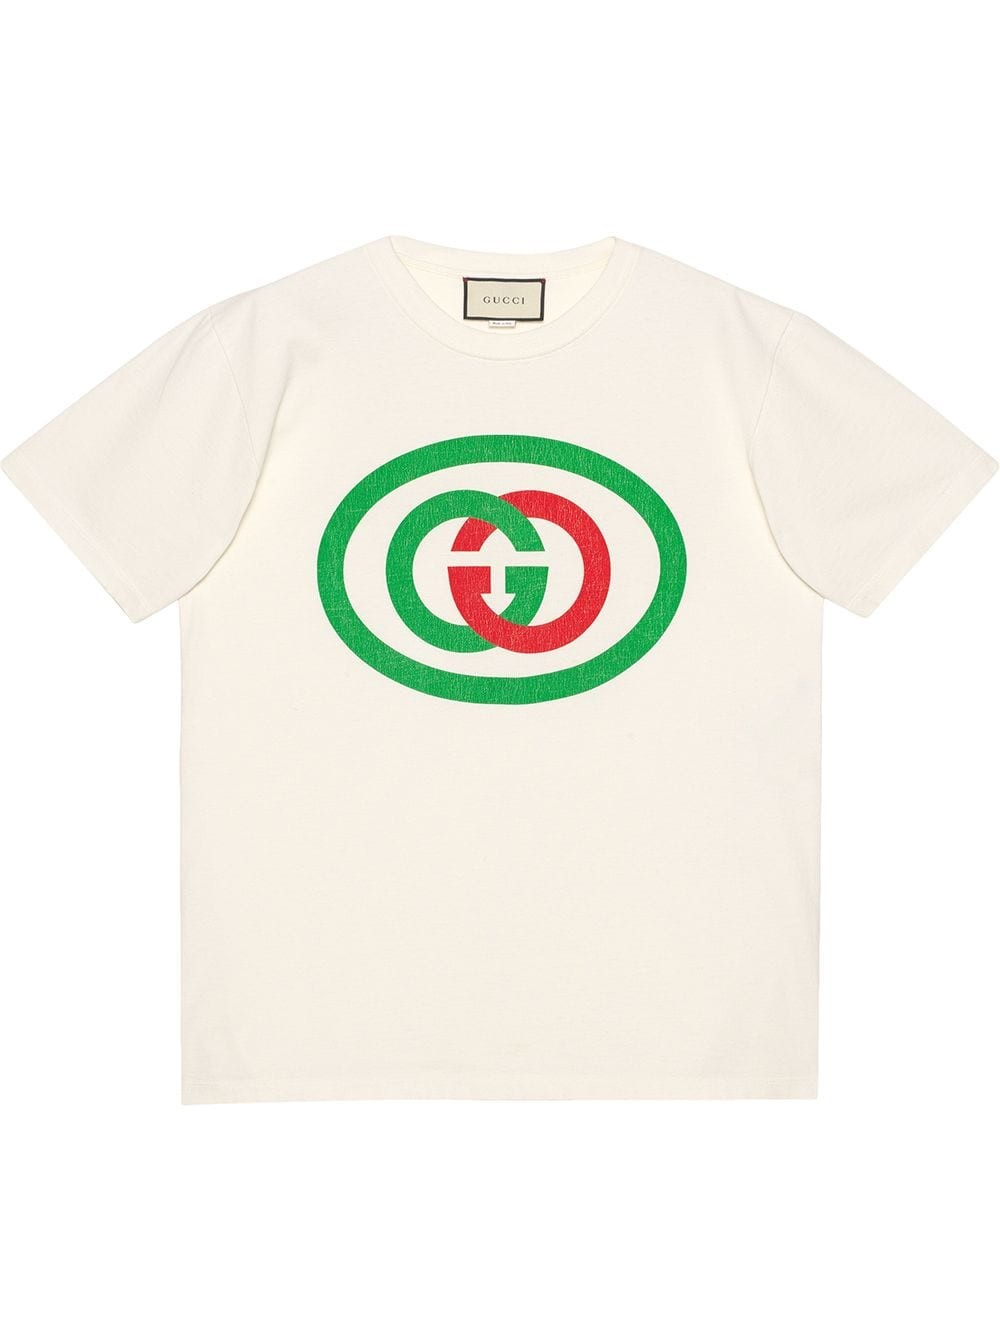 5683e9c87 gucci LOGO T-SHIRT available on montiboutique.com - 29023